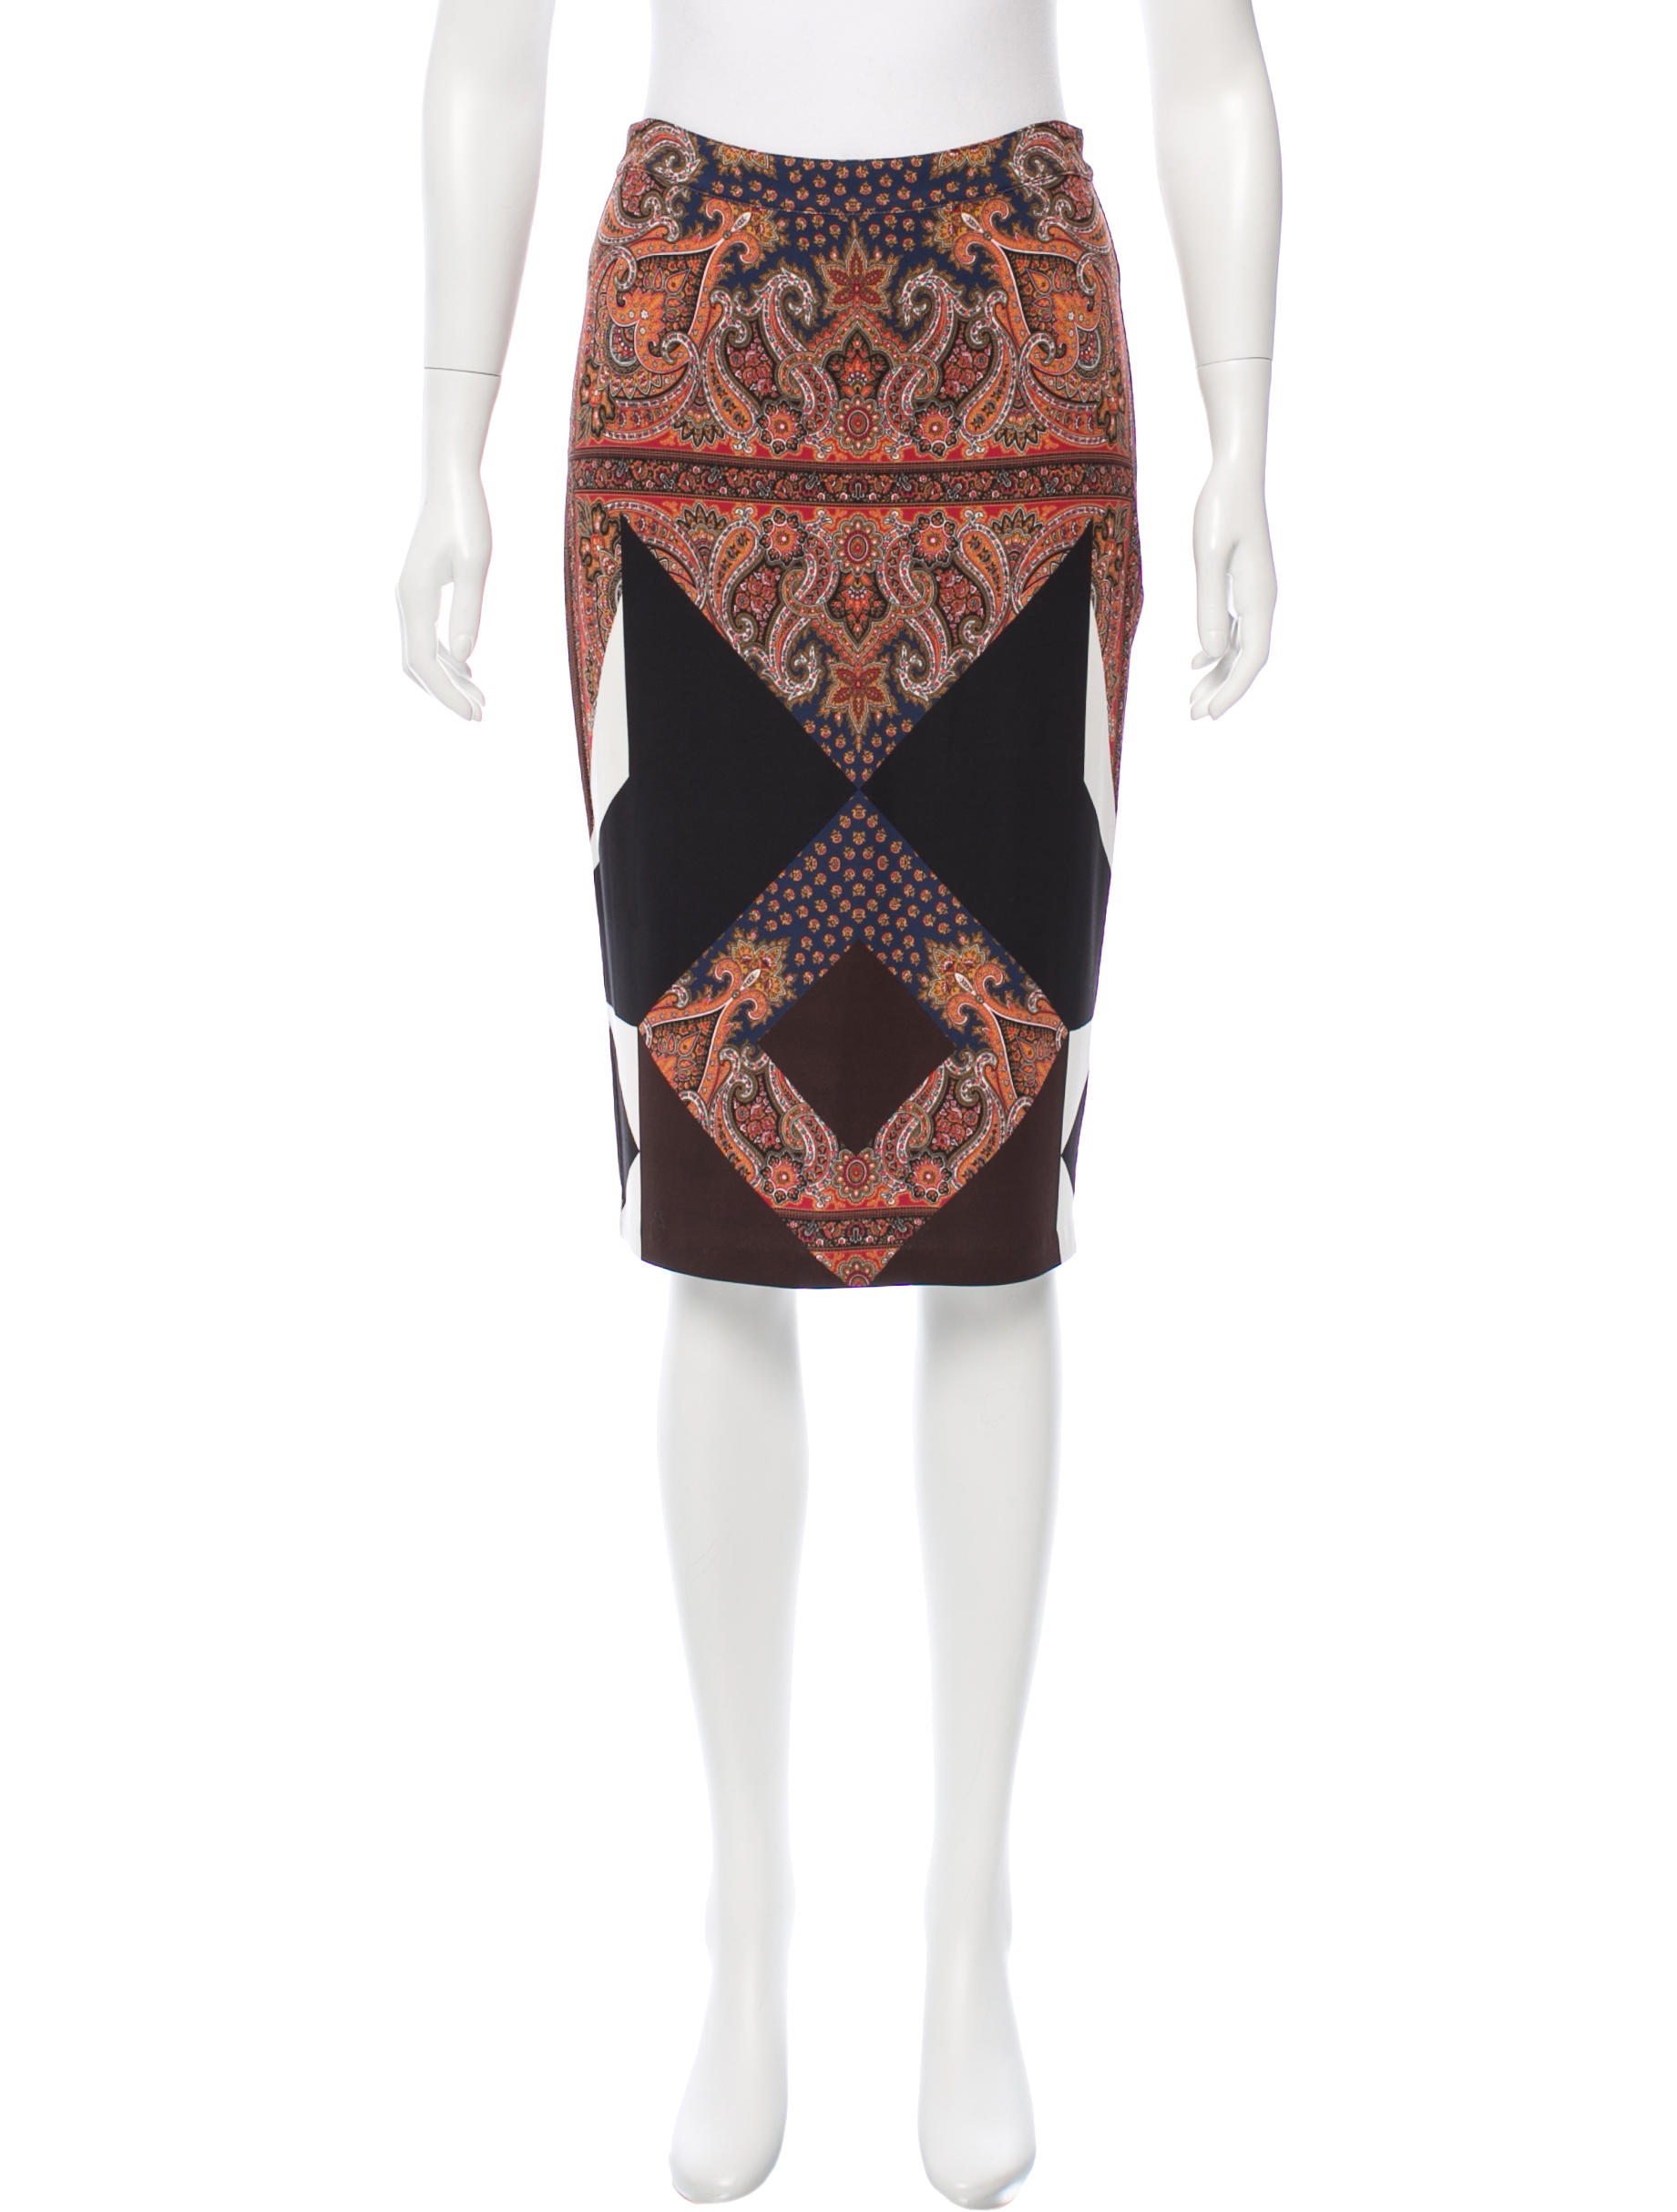 $122.50 - Givenchy Printed Pencil Skirt